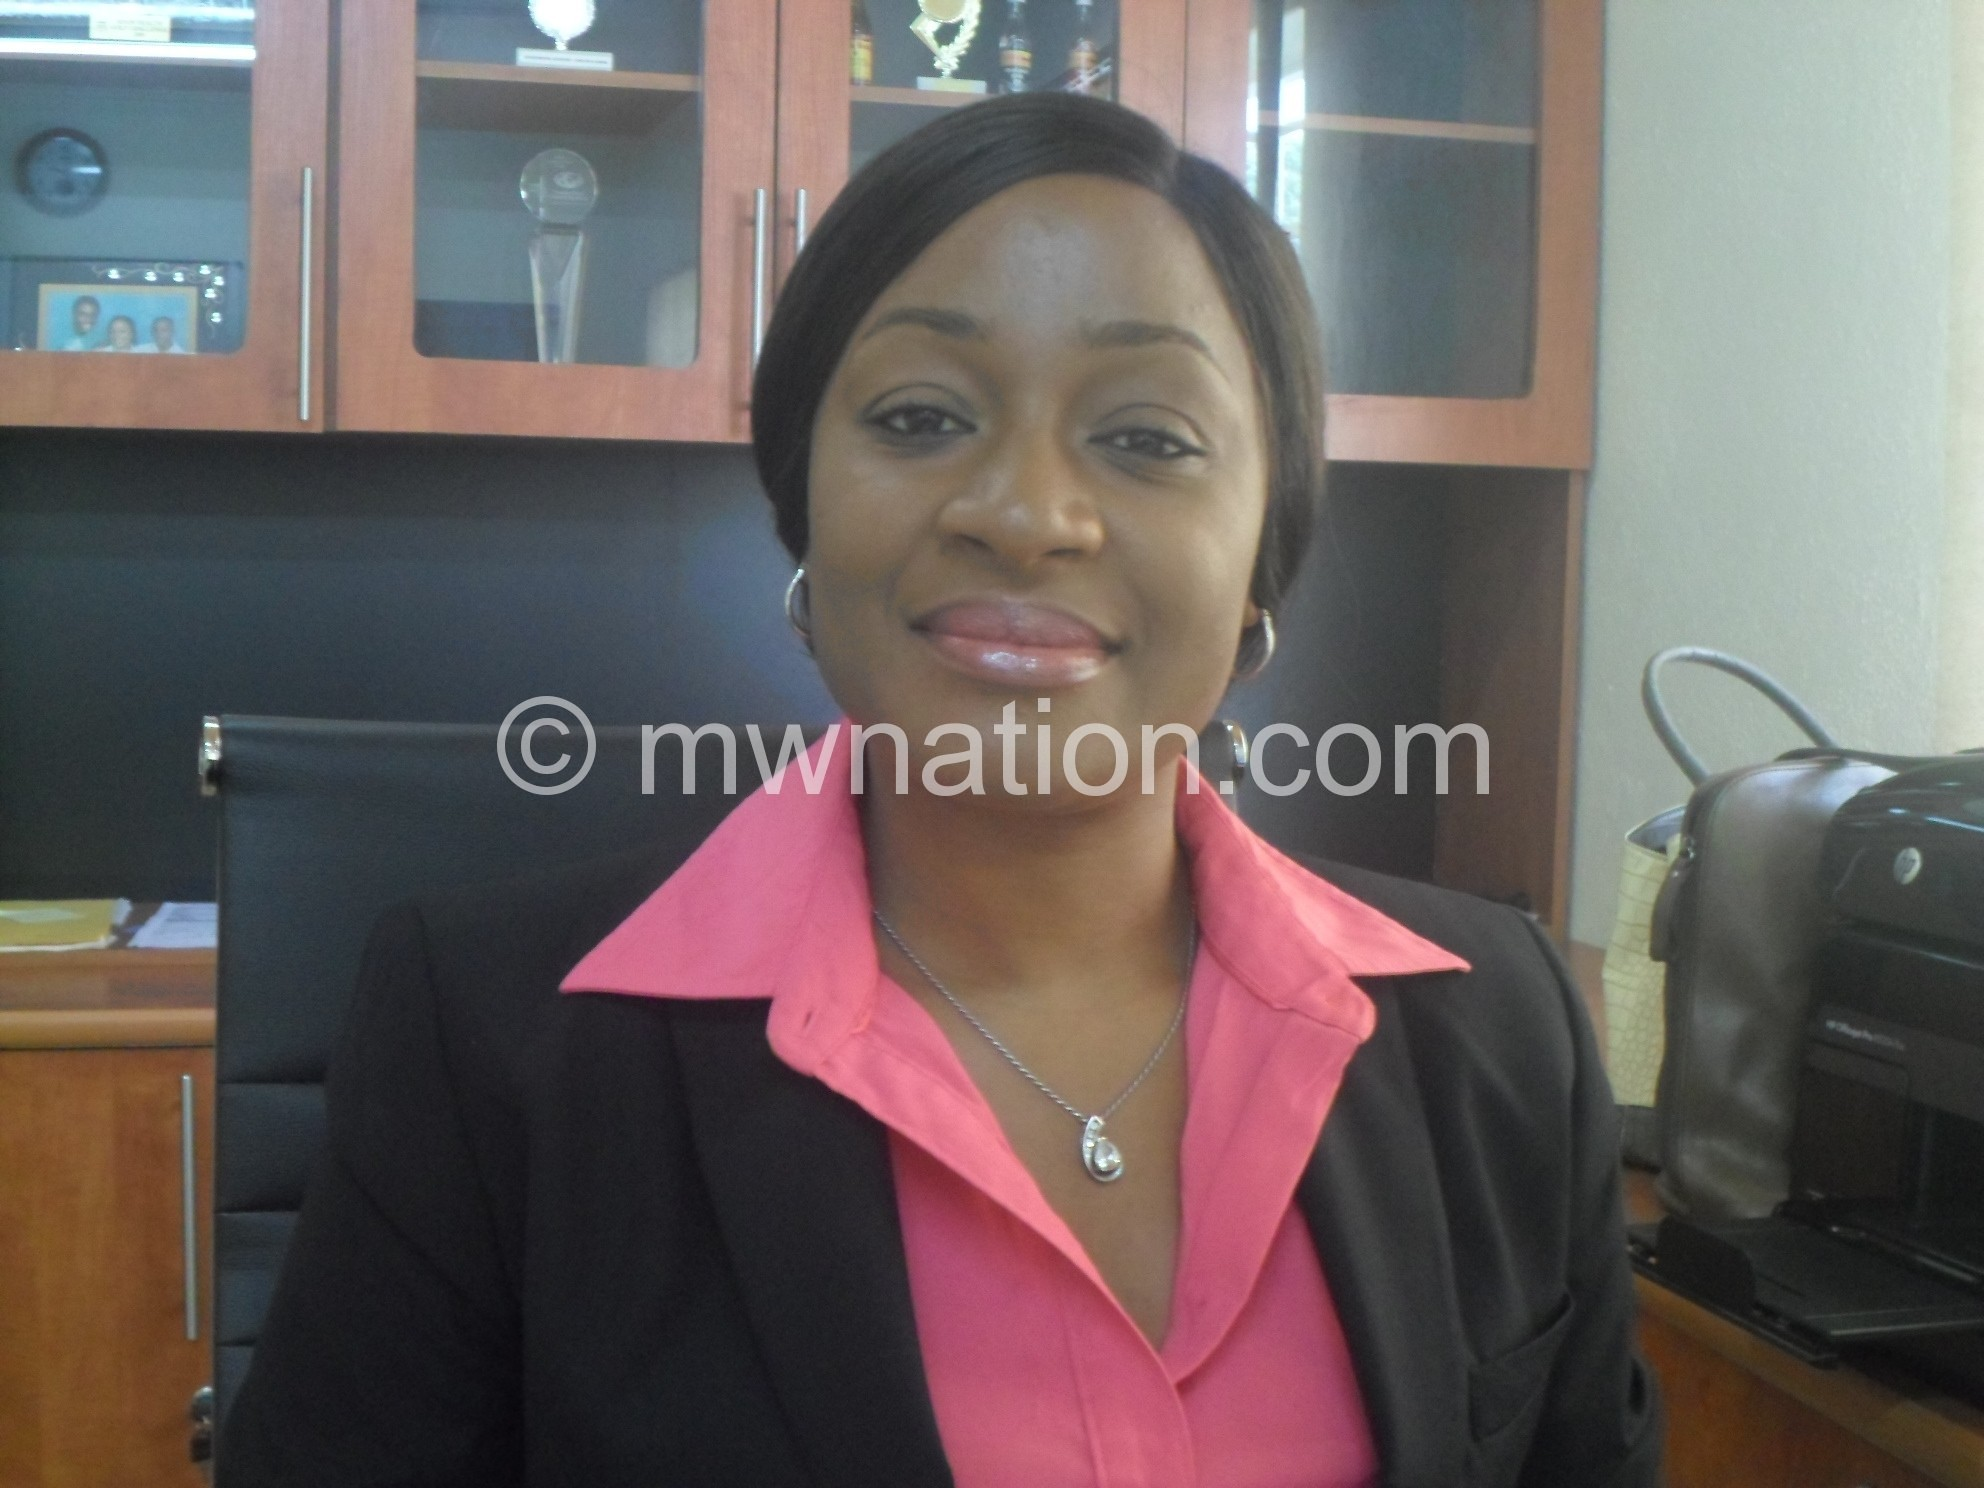 Chakaniza: We are still waiting for the ministry to our proposal